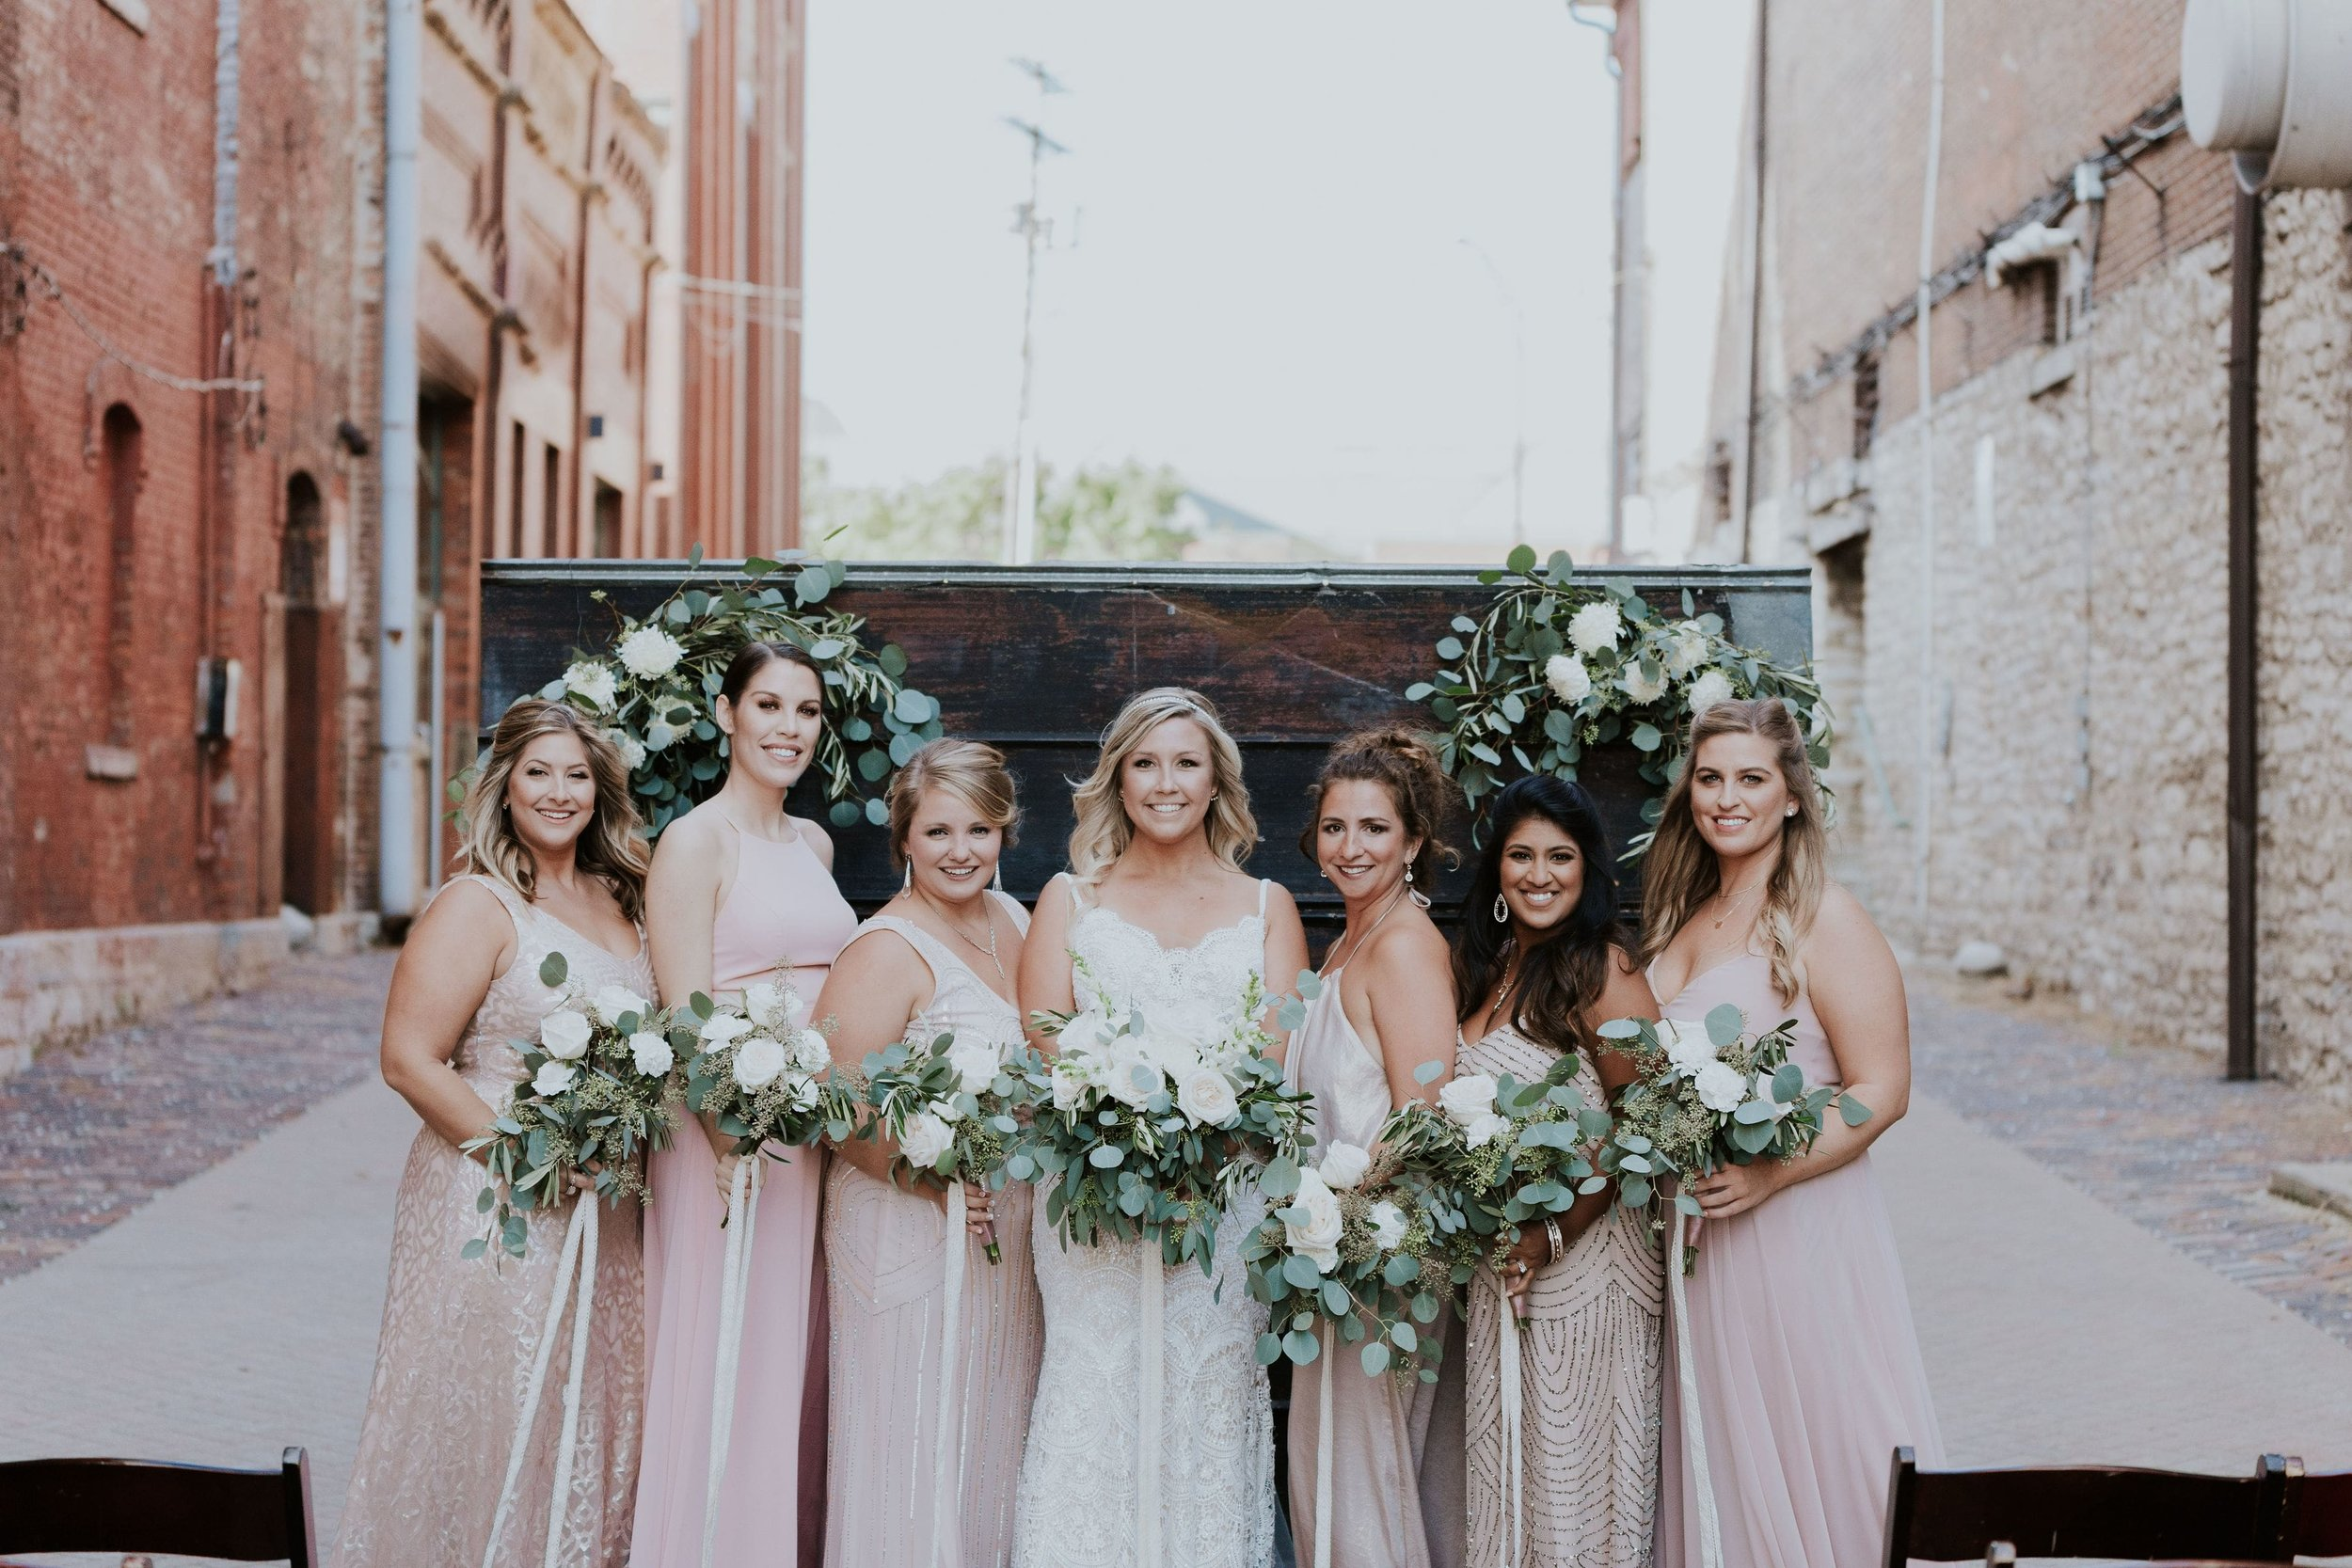 Bride and her bridesmaids in mix and match looks in blush pink and gold beaded gowns